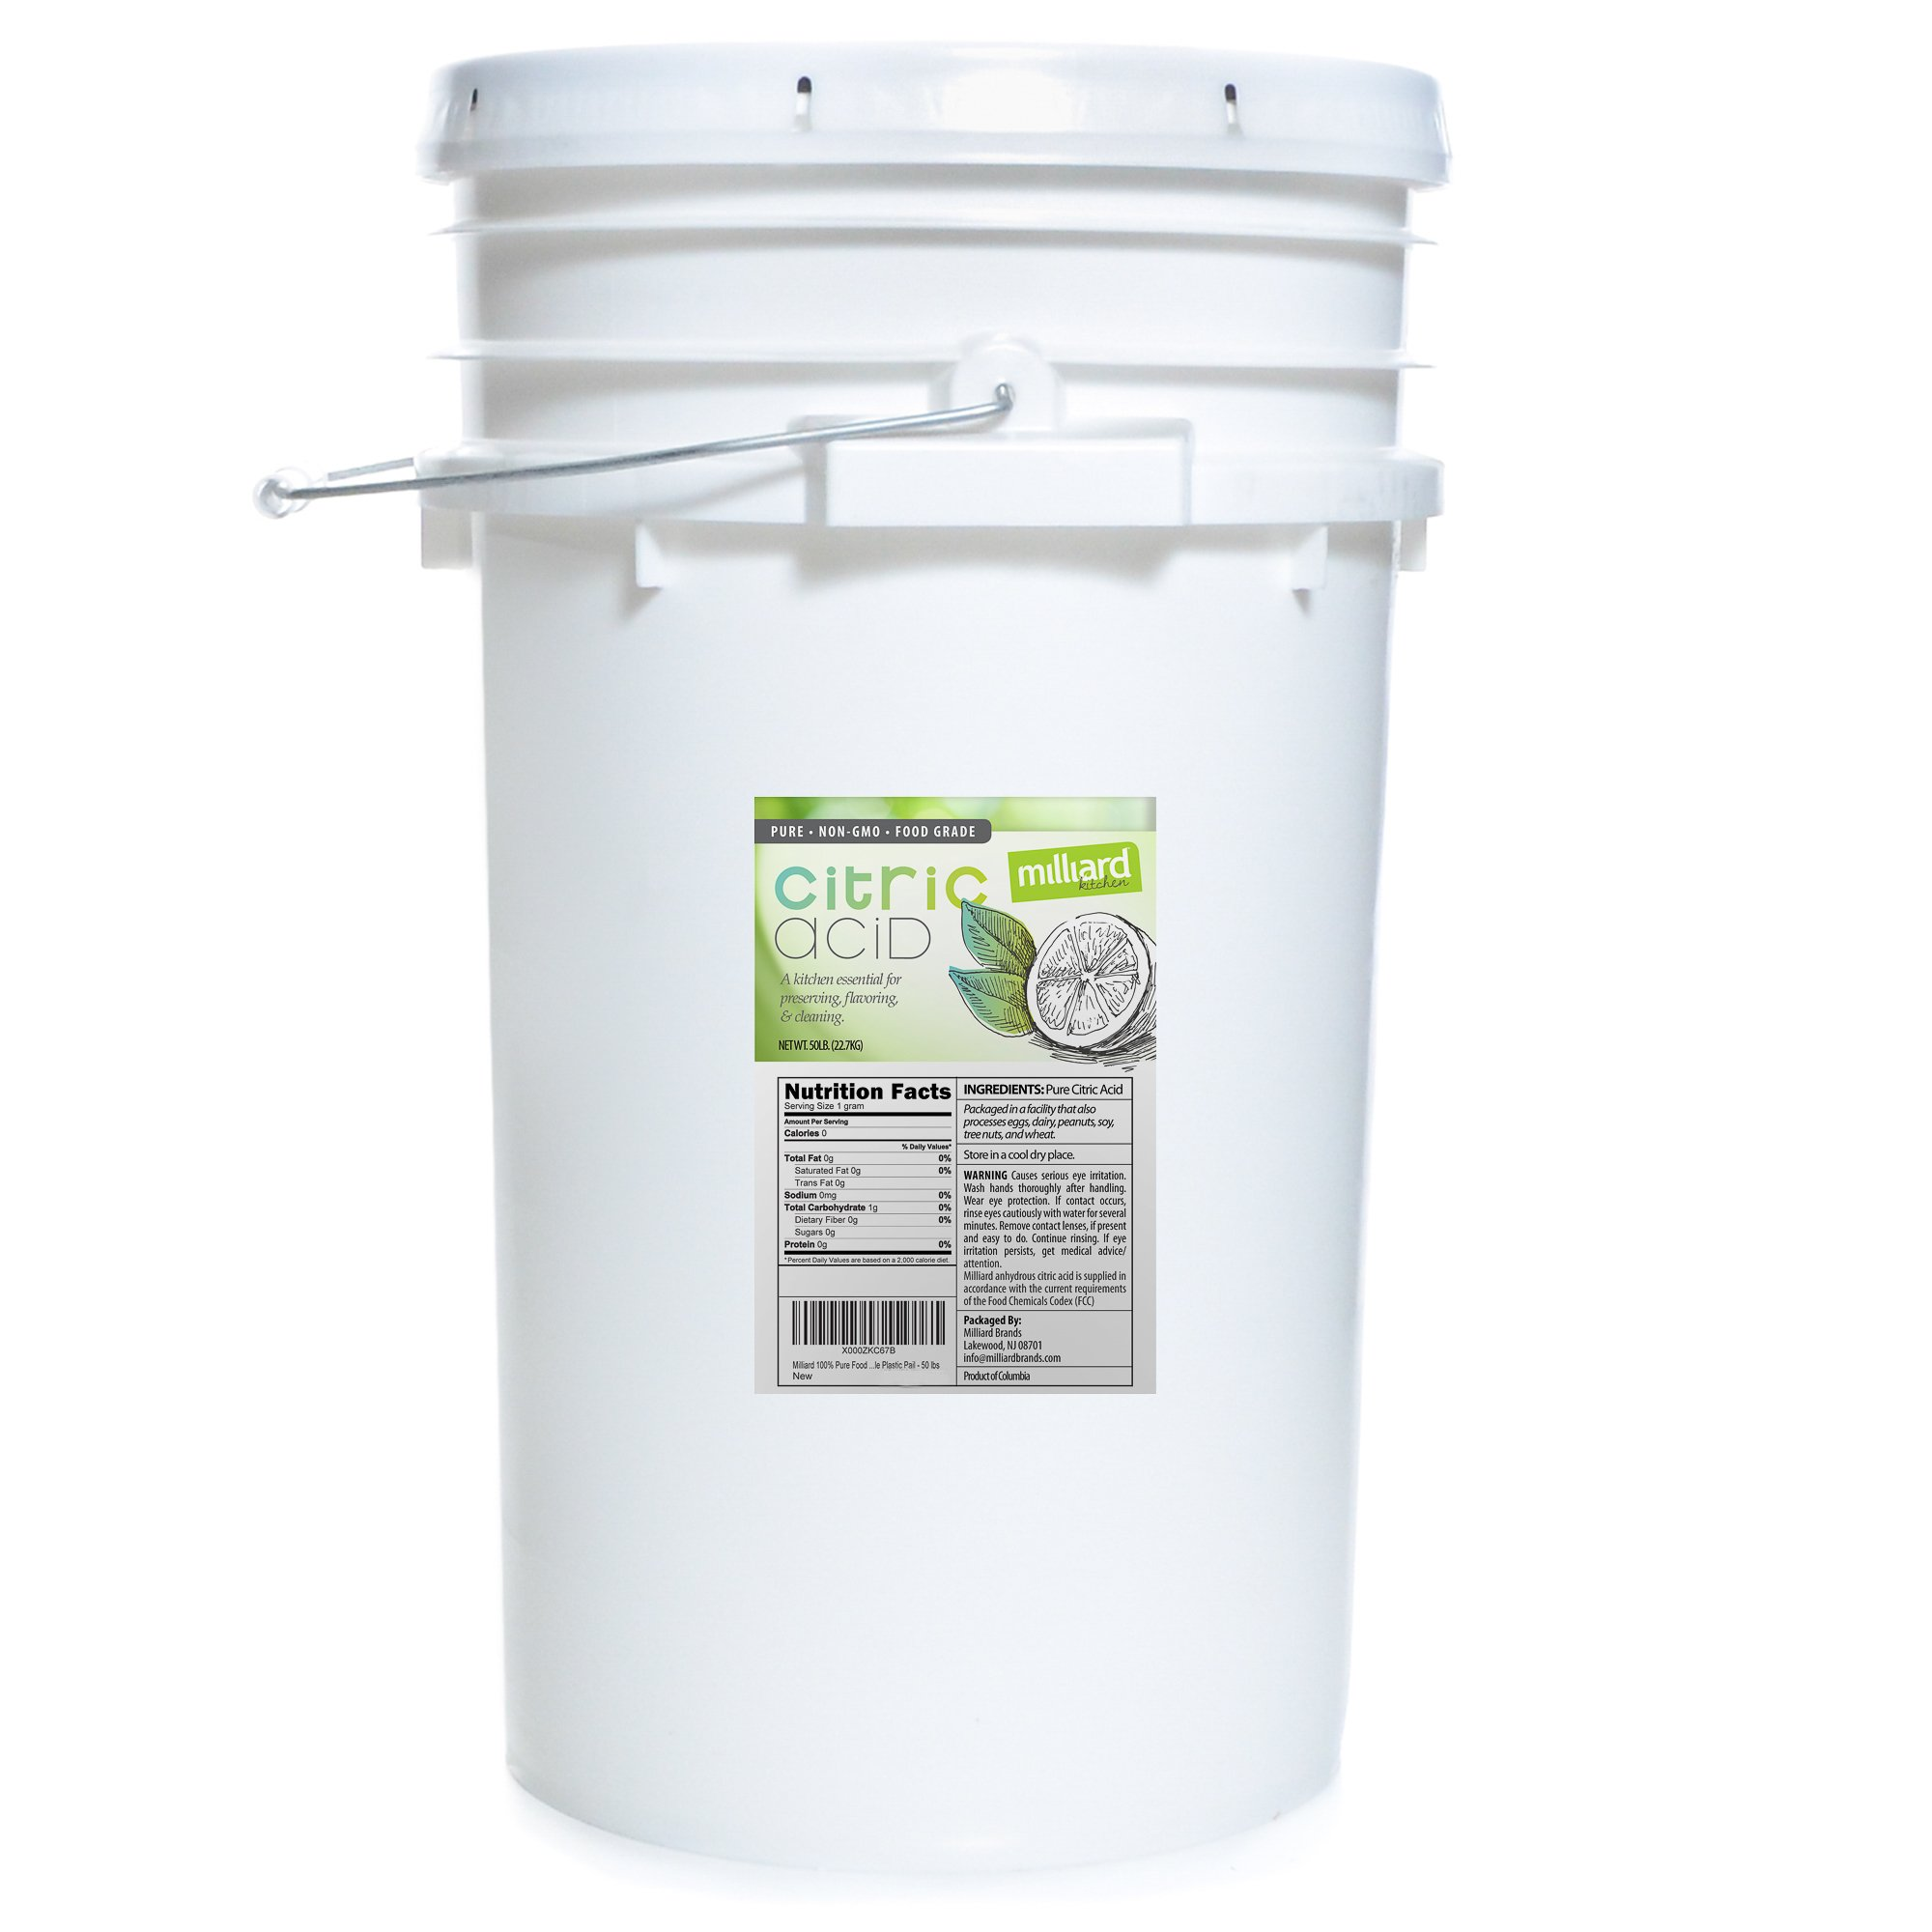 Milliard Citric Acid 50 Pound PAIL - 100% Pure Food Grade NON-GMO Project VERIFIED (50 Pound) by Milliard (Image #2)